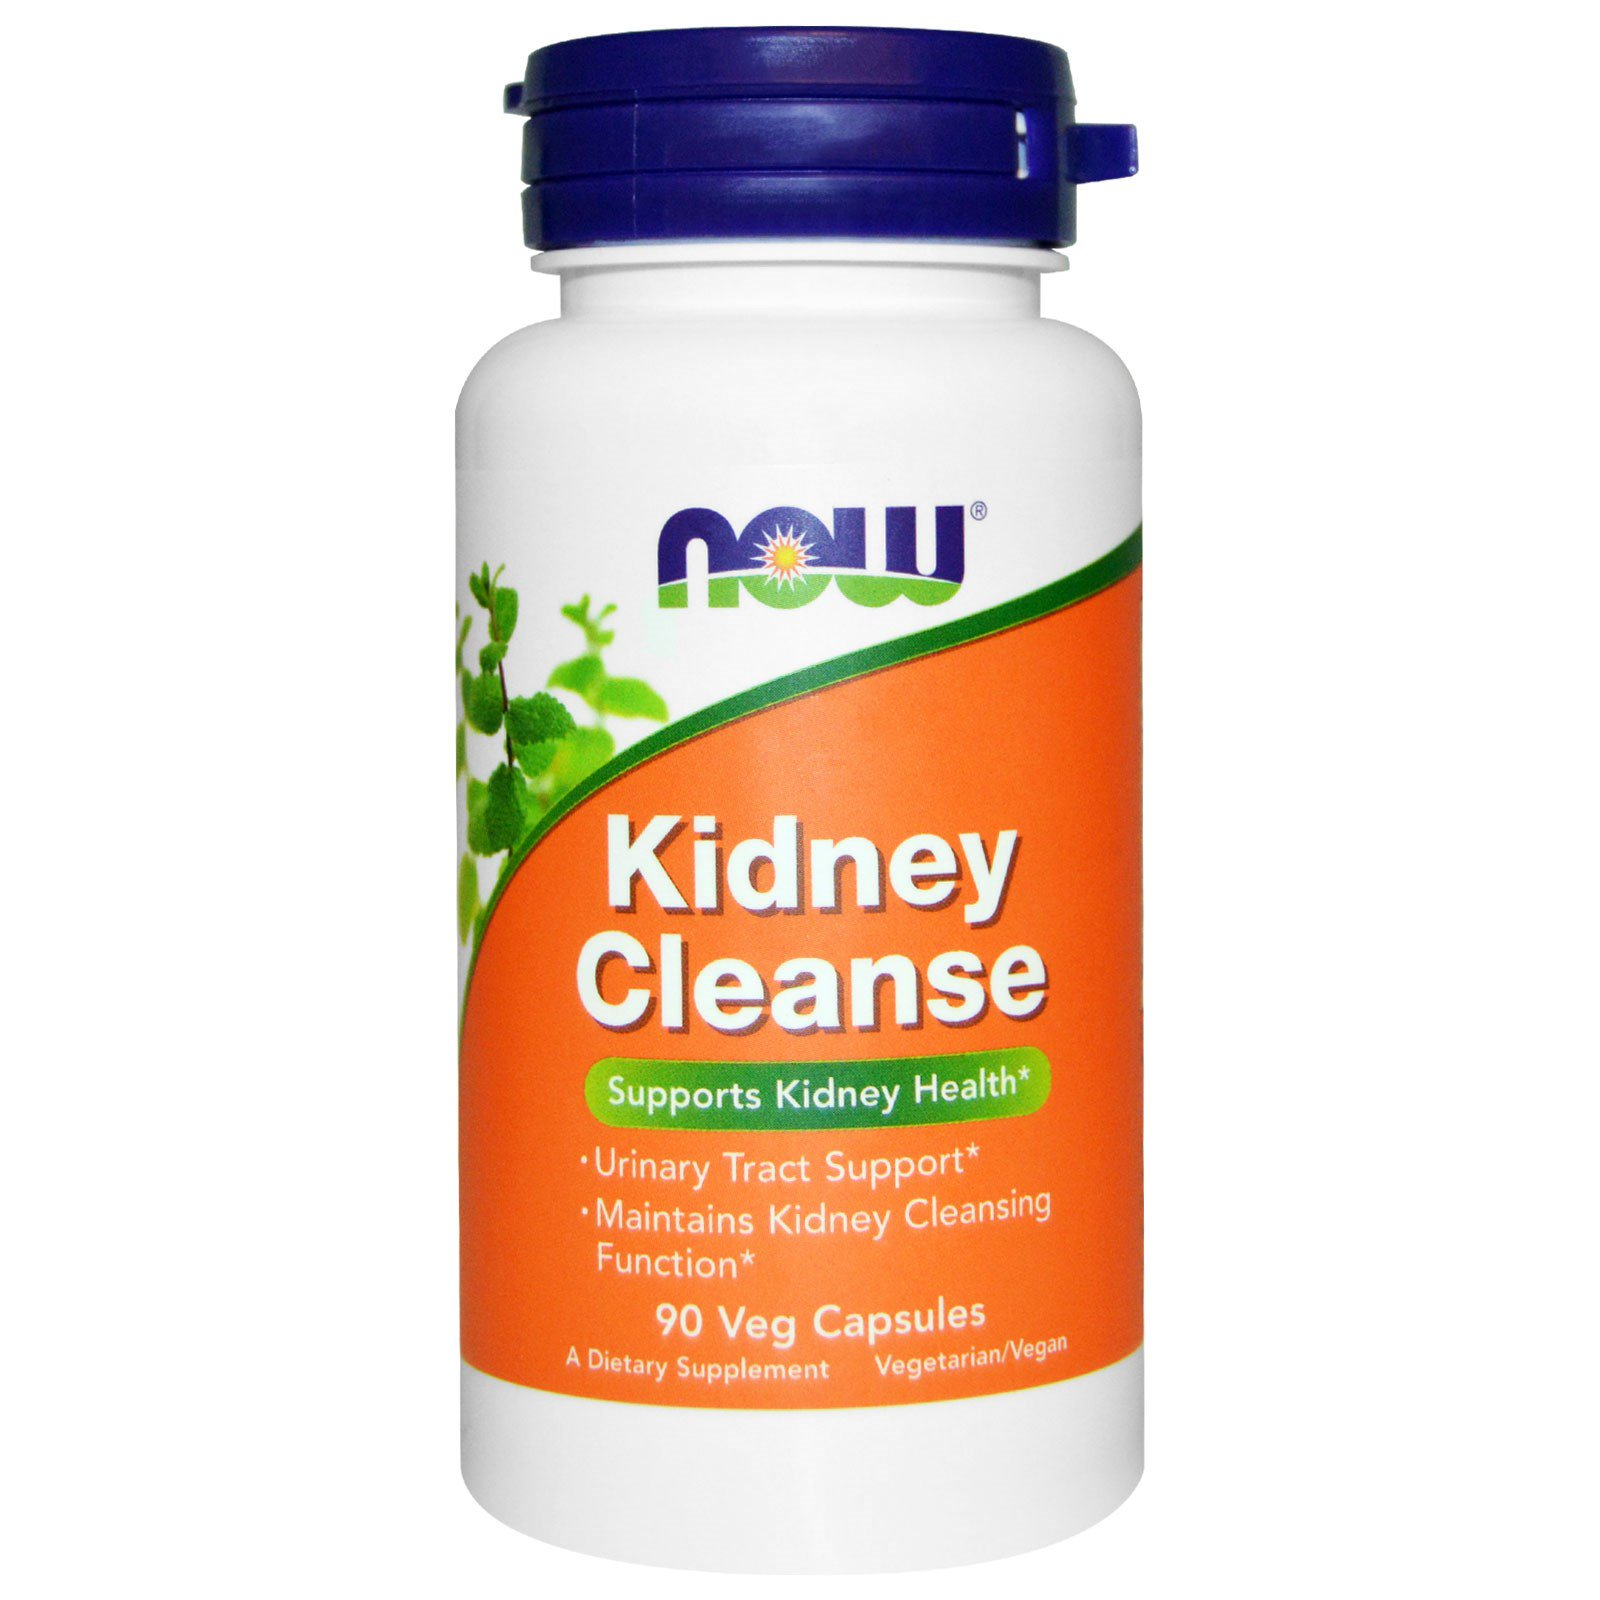 Vitamin Supplements And Kidney Disease